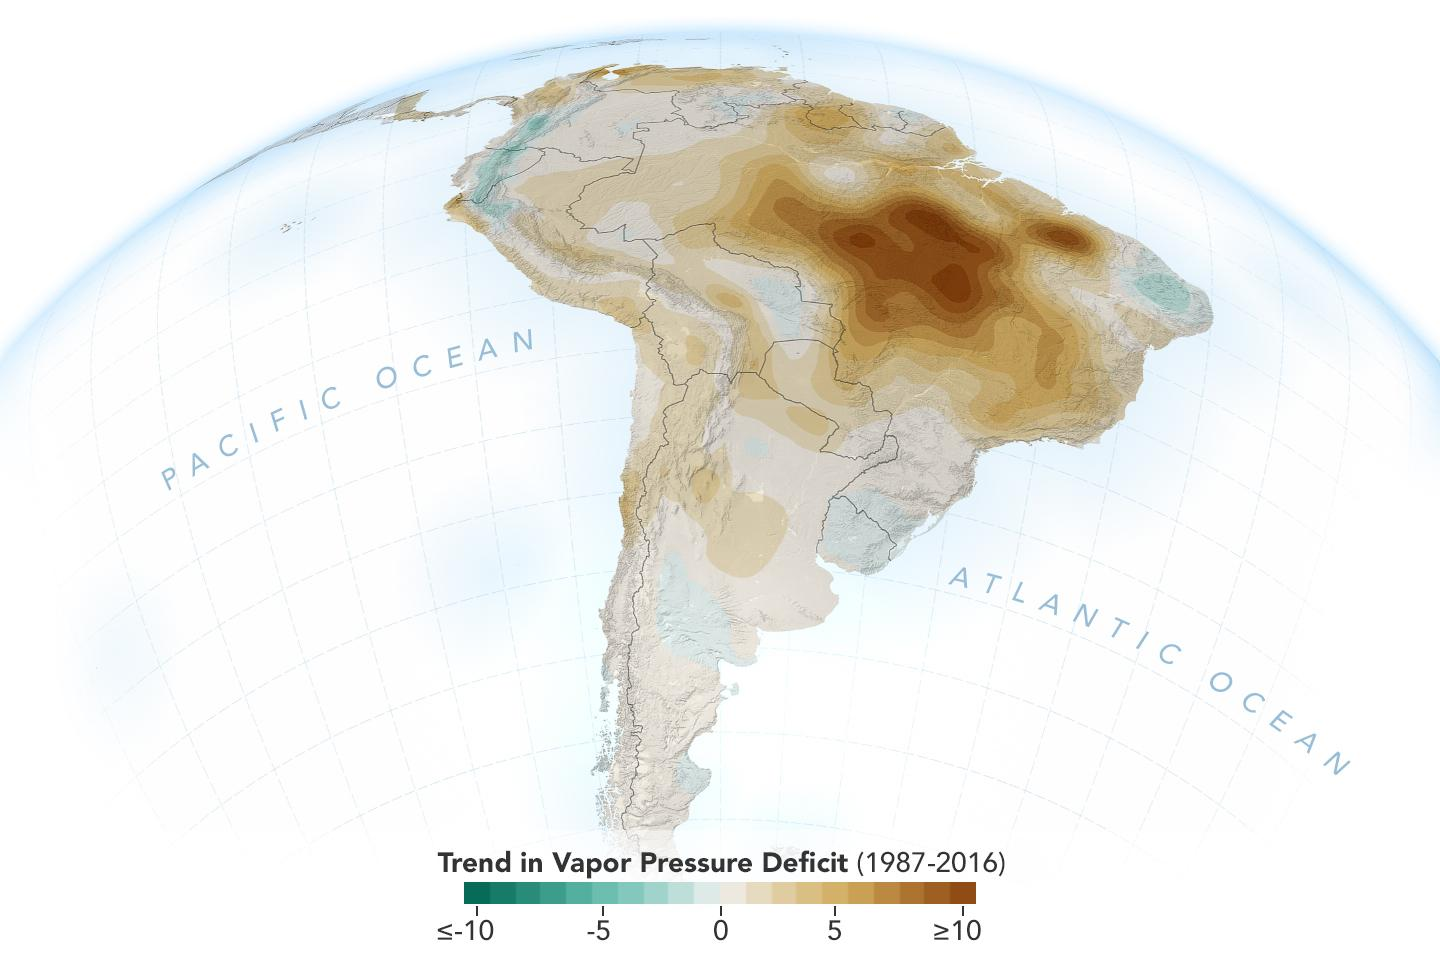 The image shows the decline of moisture in the air over the Amazon rainforest.